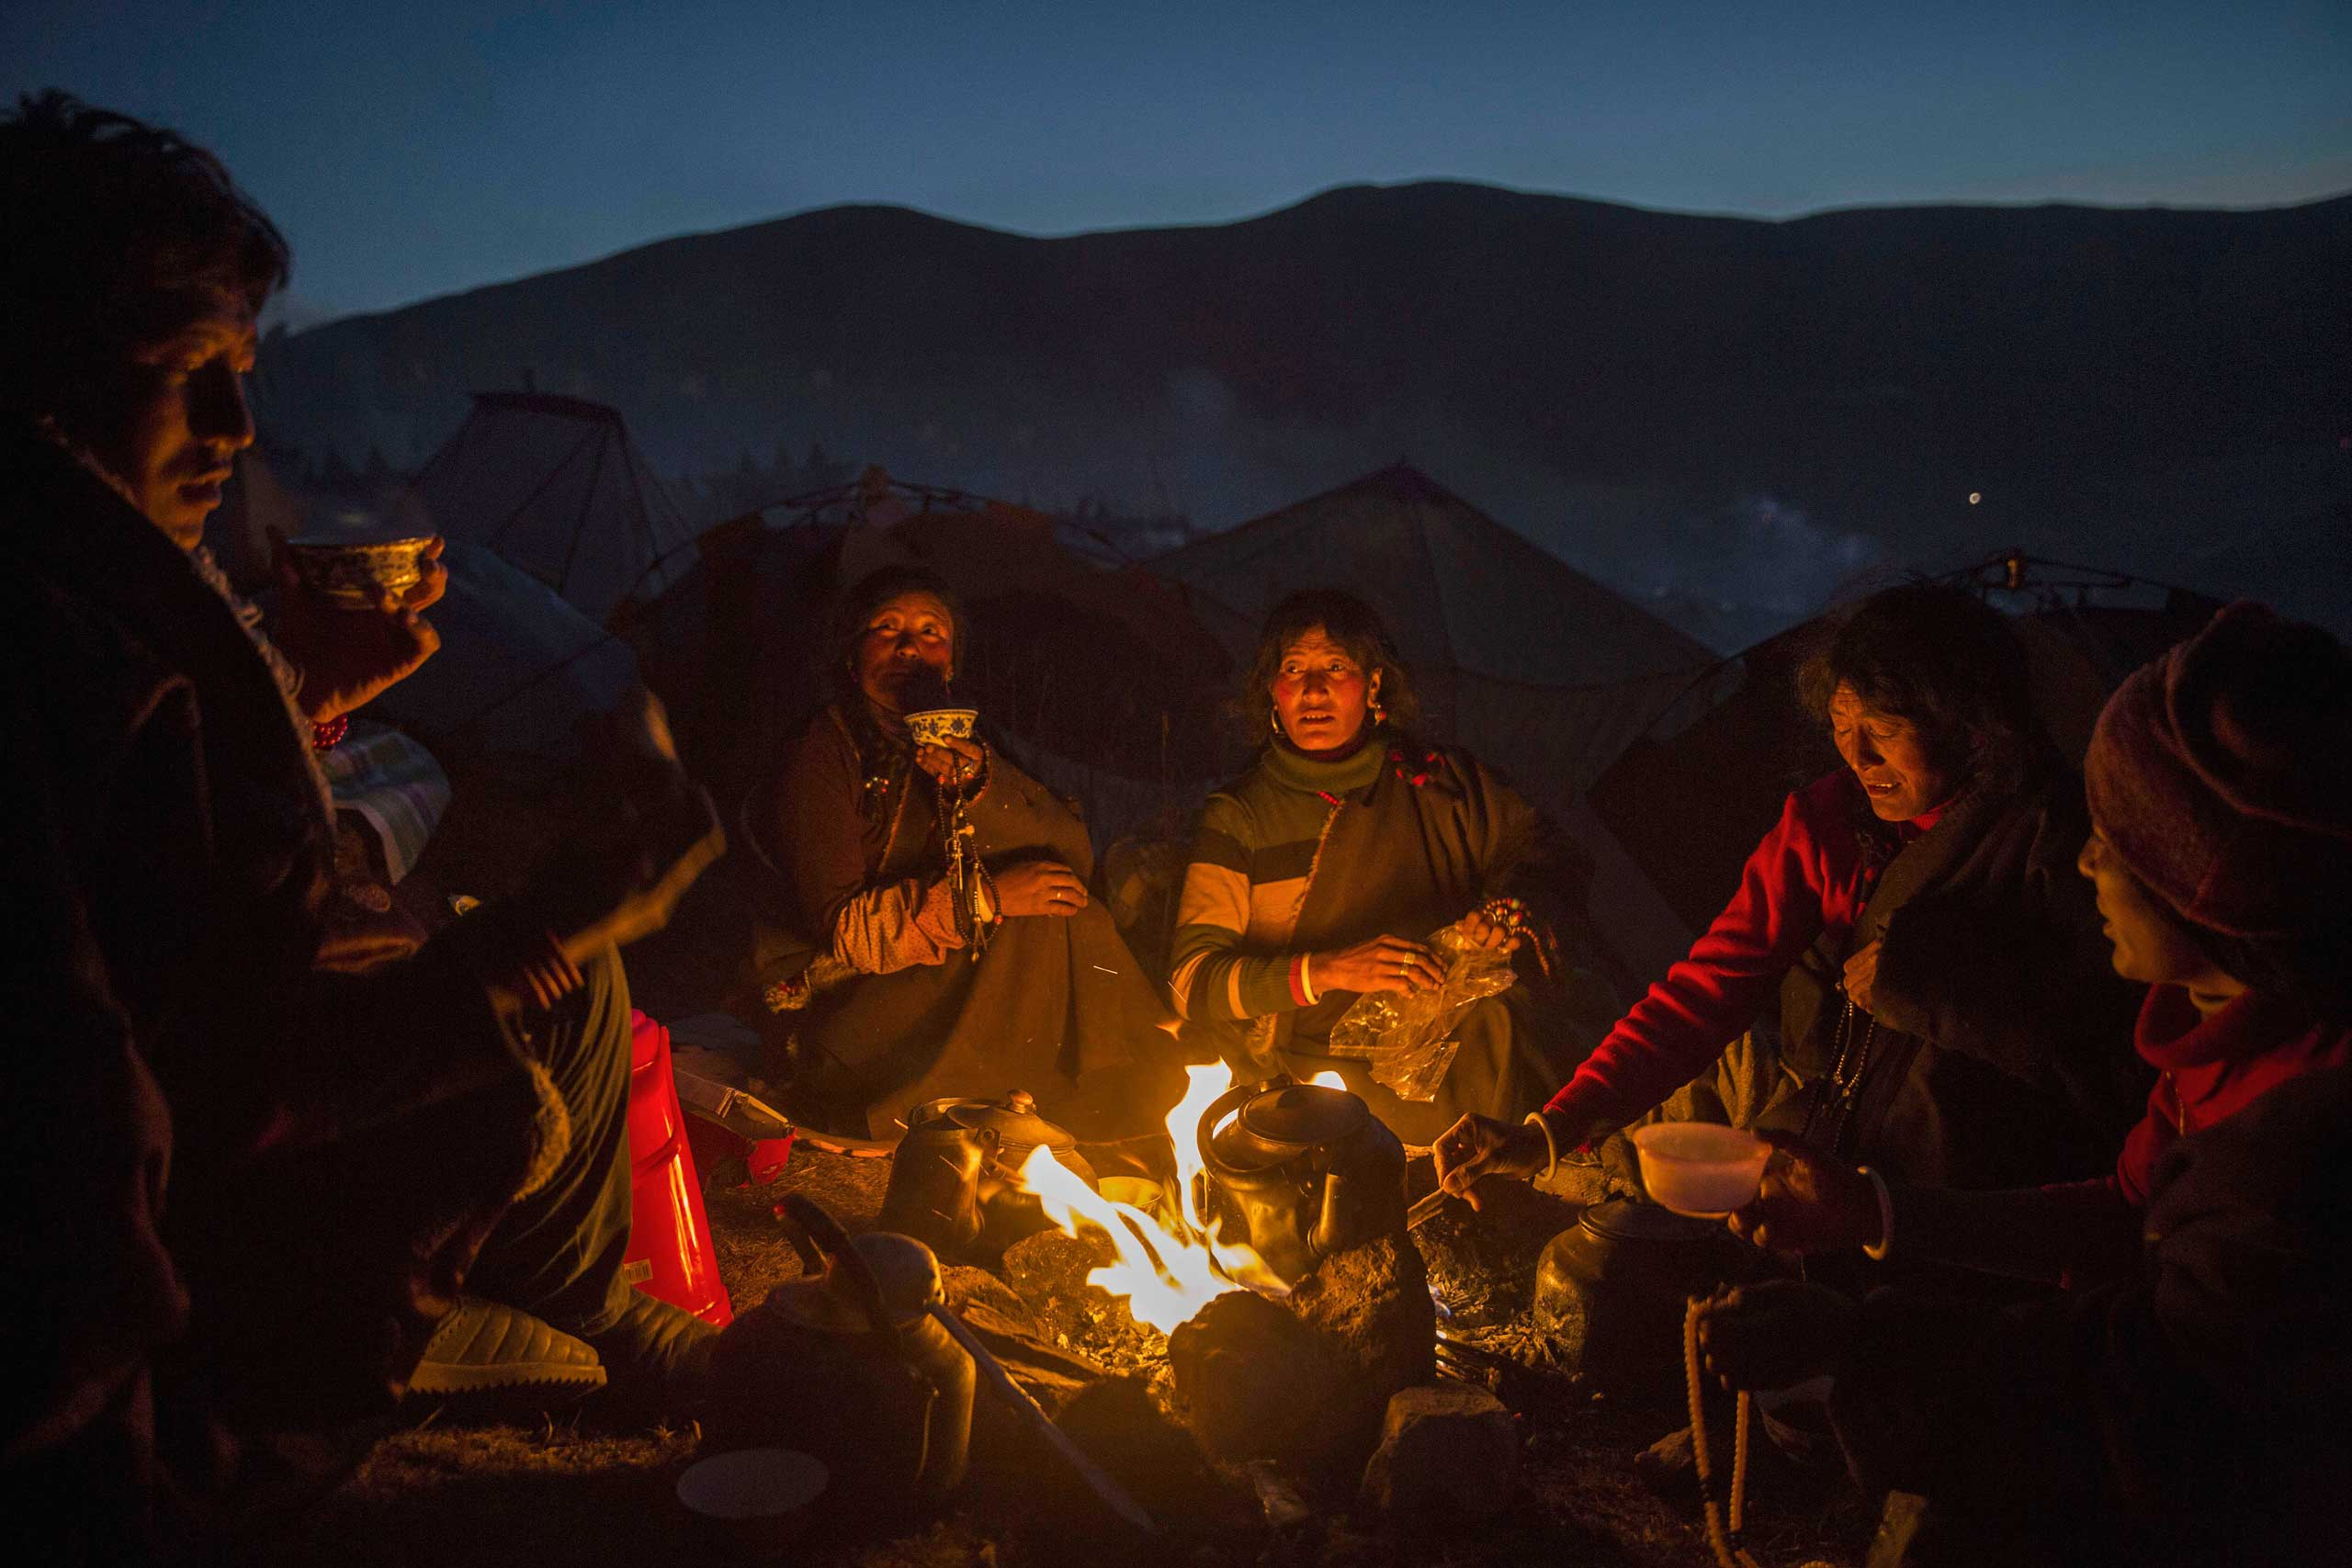 NBC News: Buddhists Search for Bliss in Remote Tibetan PlateauTibetan Buddhist nomads cook and stay warm by candlelight at dusk following a chanting session as part of the annual Bliss Dharma Assembly at the Larung Wuming Buddhist Institute in Sertar county, in the remote Garze Tibetan Autonomous Prefecture, Sichuan province, China,  on Oct. 31, 2015.